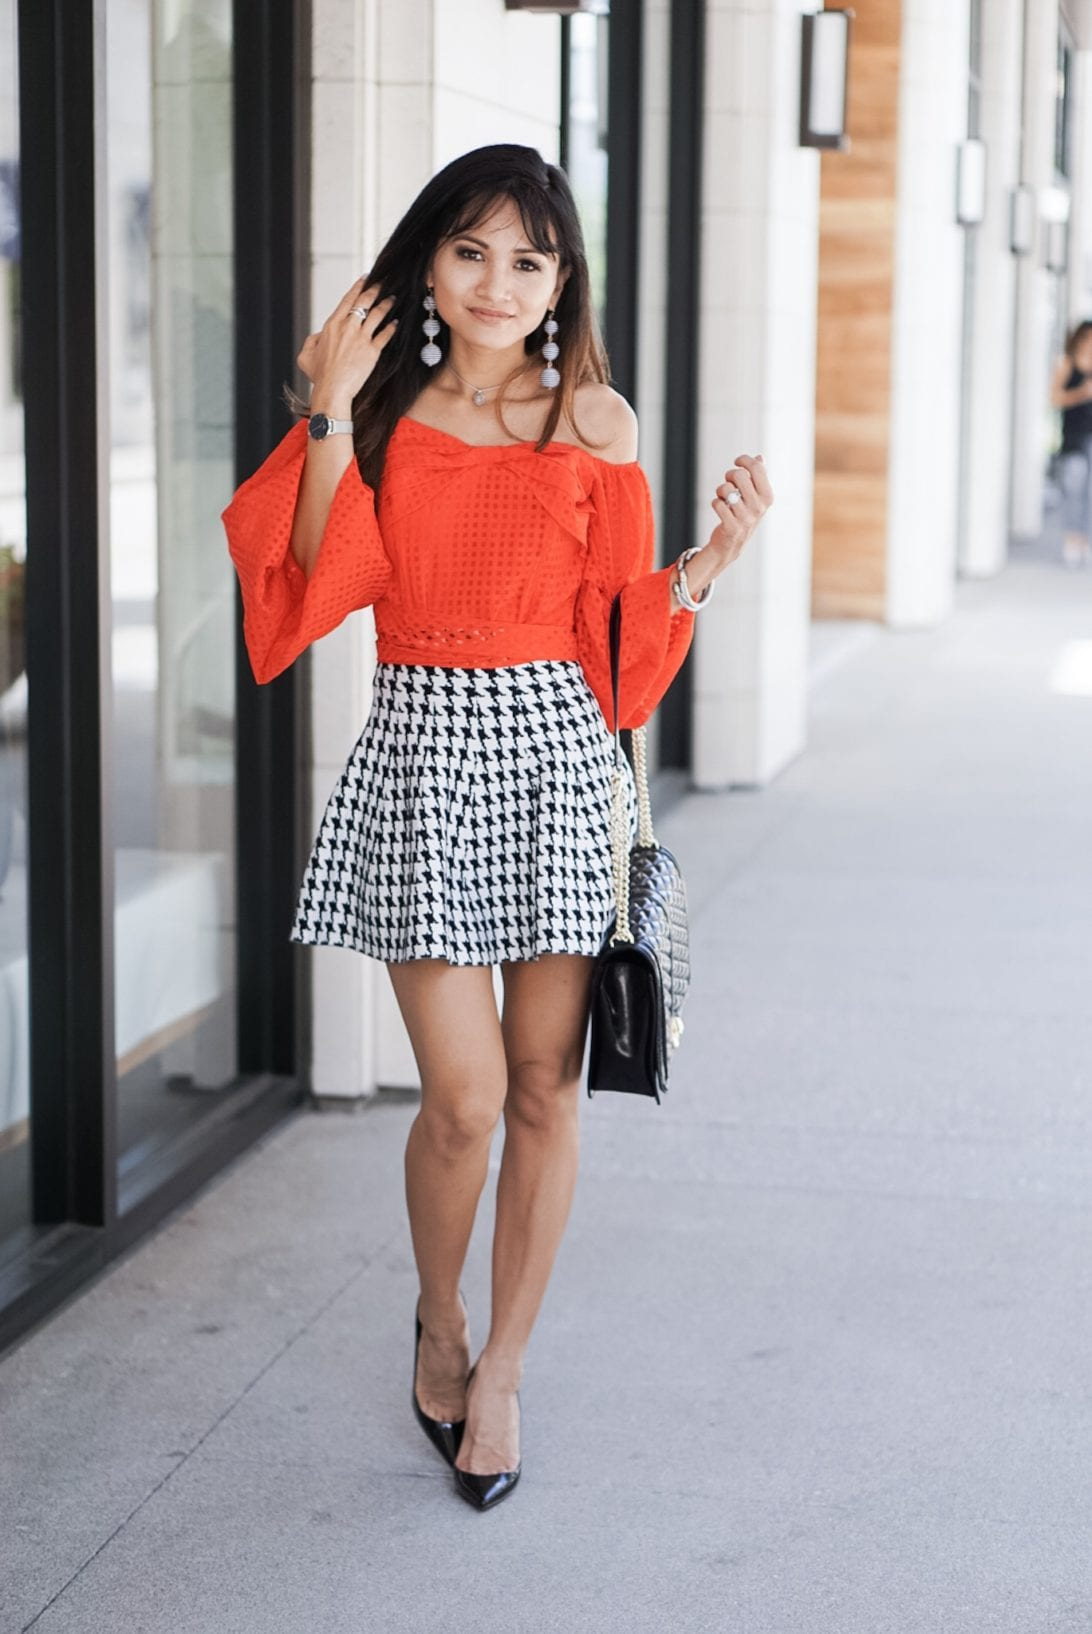 RED OFF THE SHOULDER BASKET WEAVE TOP WITH BOW TIE WAIST, houndstooth skirt, puff sleeves, love cross body bag, flap bag, louboutin heels, black patent heels